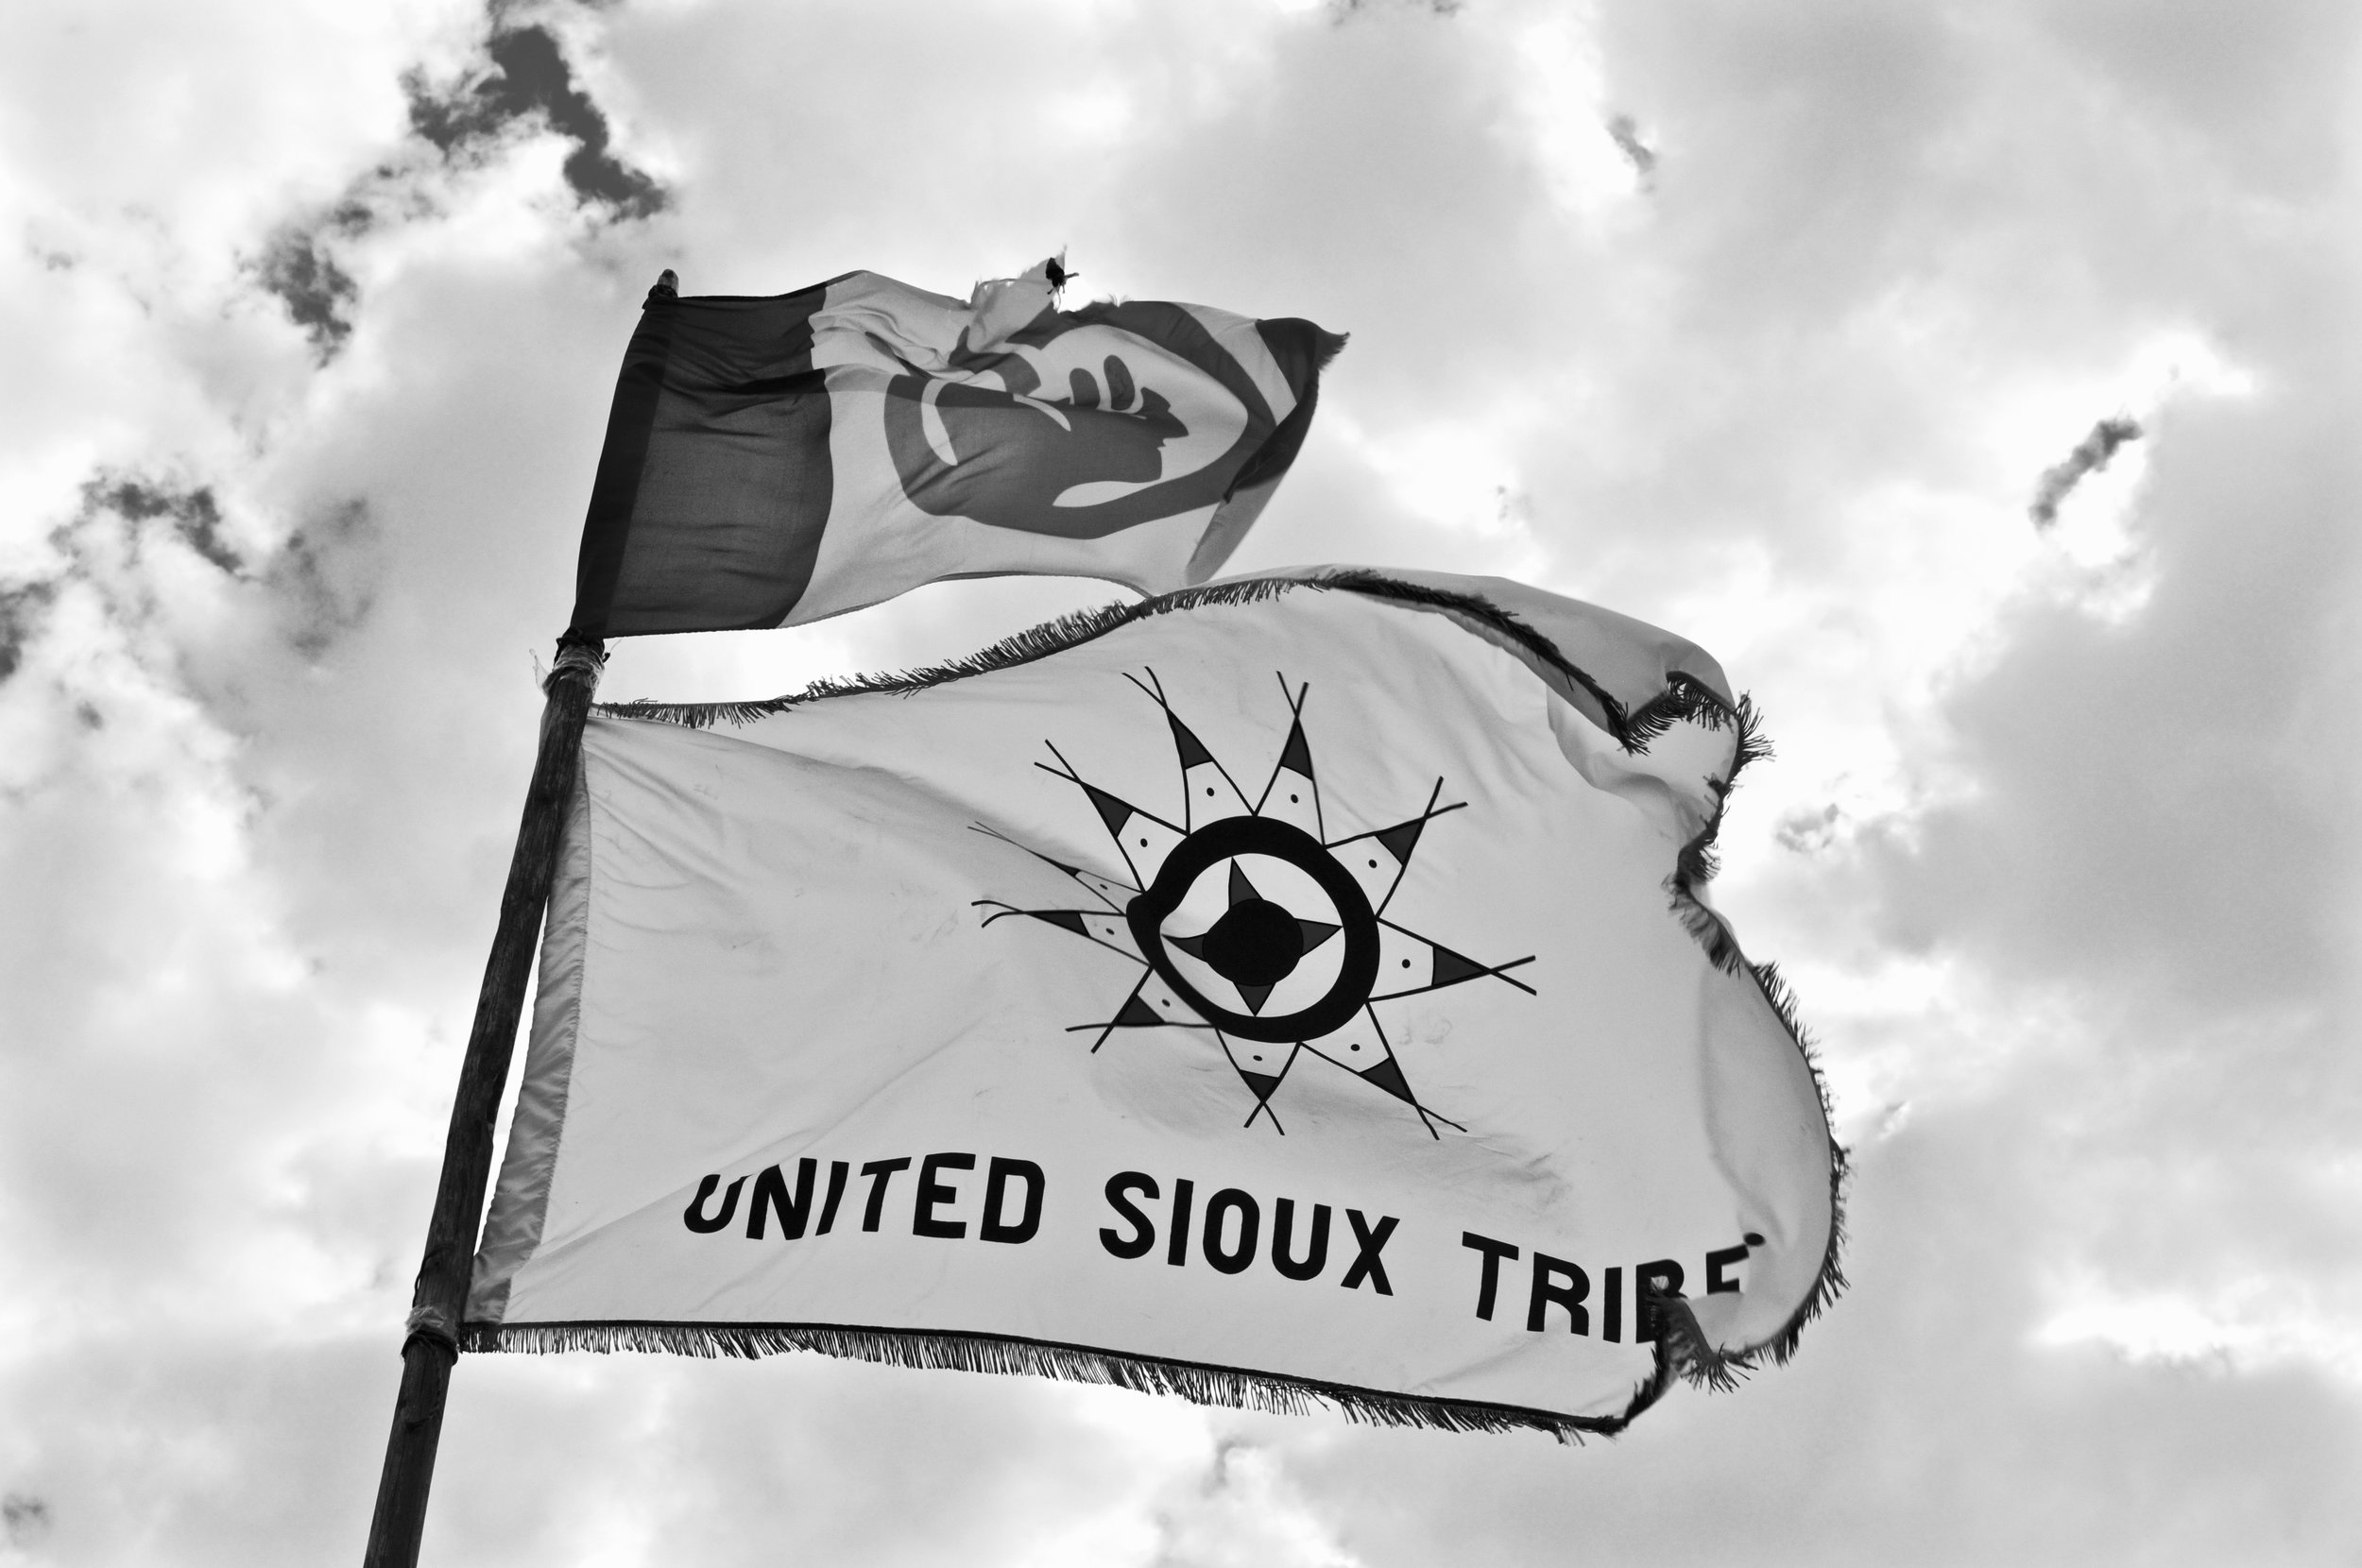 United Sioux Tribes